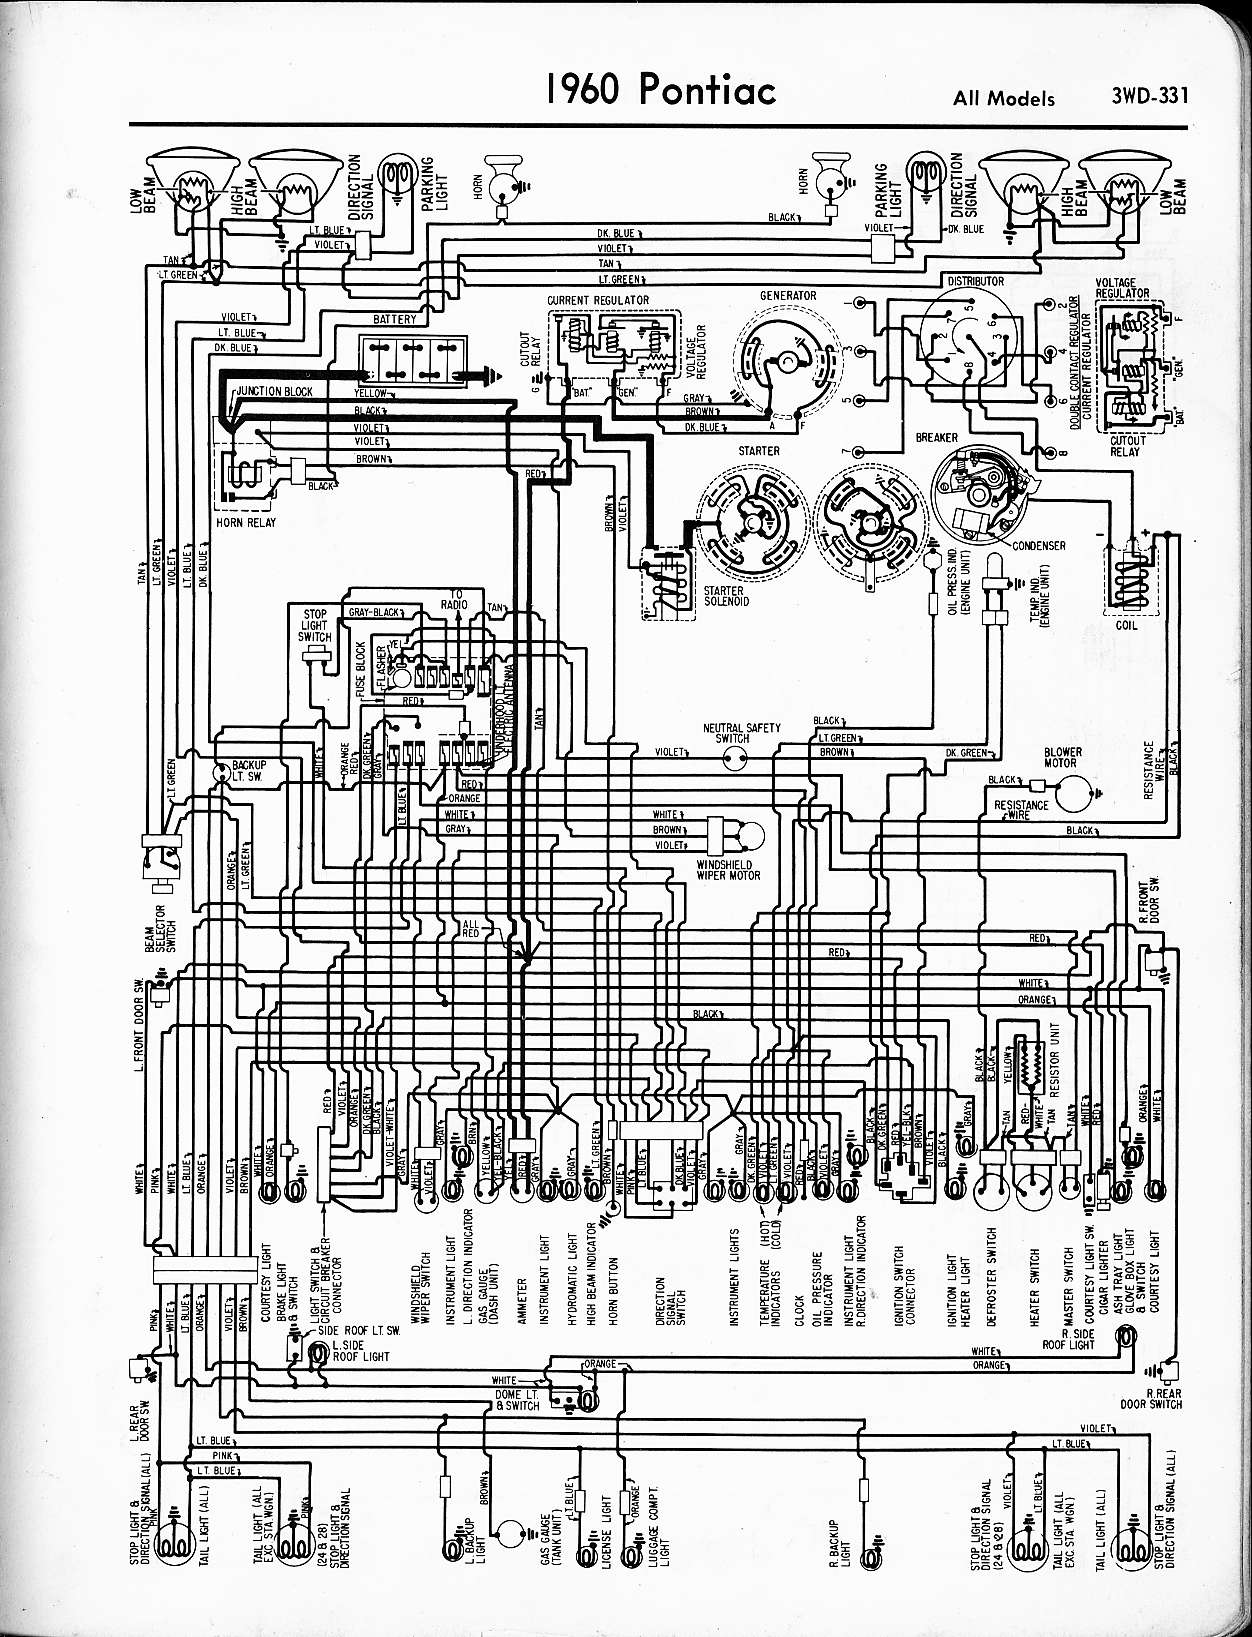 1959 Cadillac Wiring Diagram Improve 1968 Dash Wallace Racing Diagrams Rh Wallaceracing Com